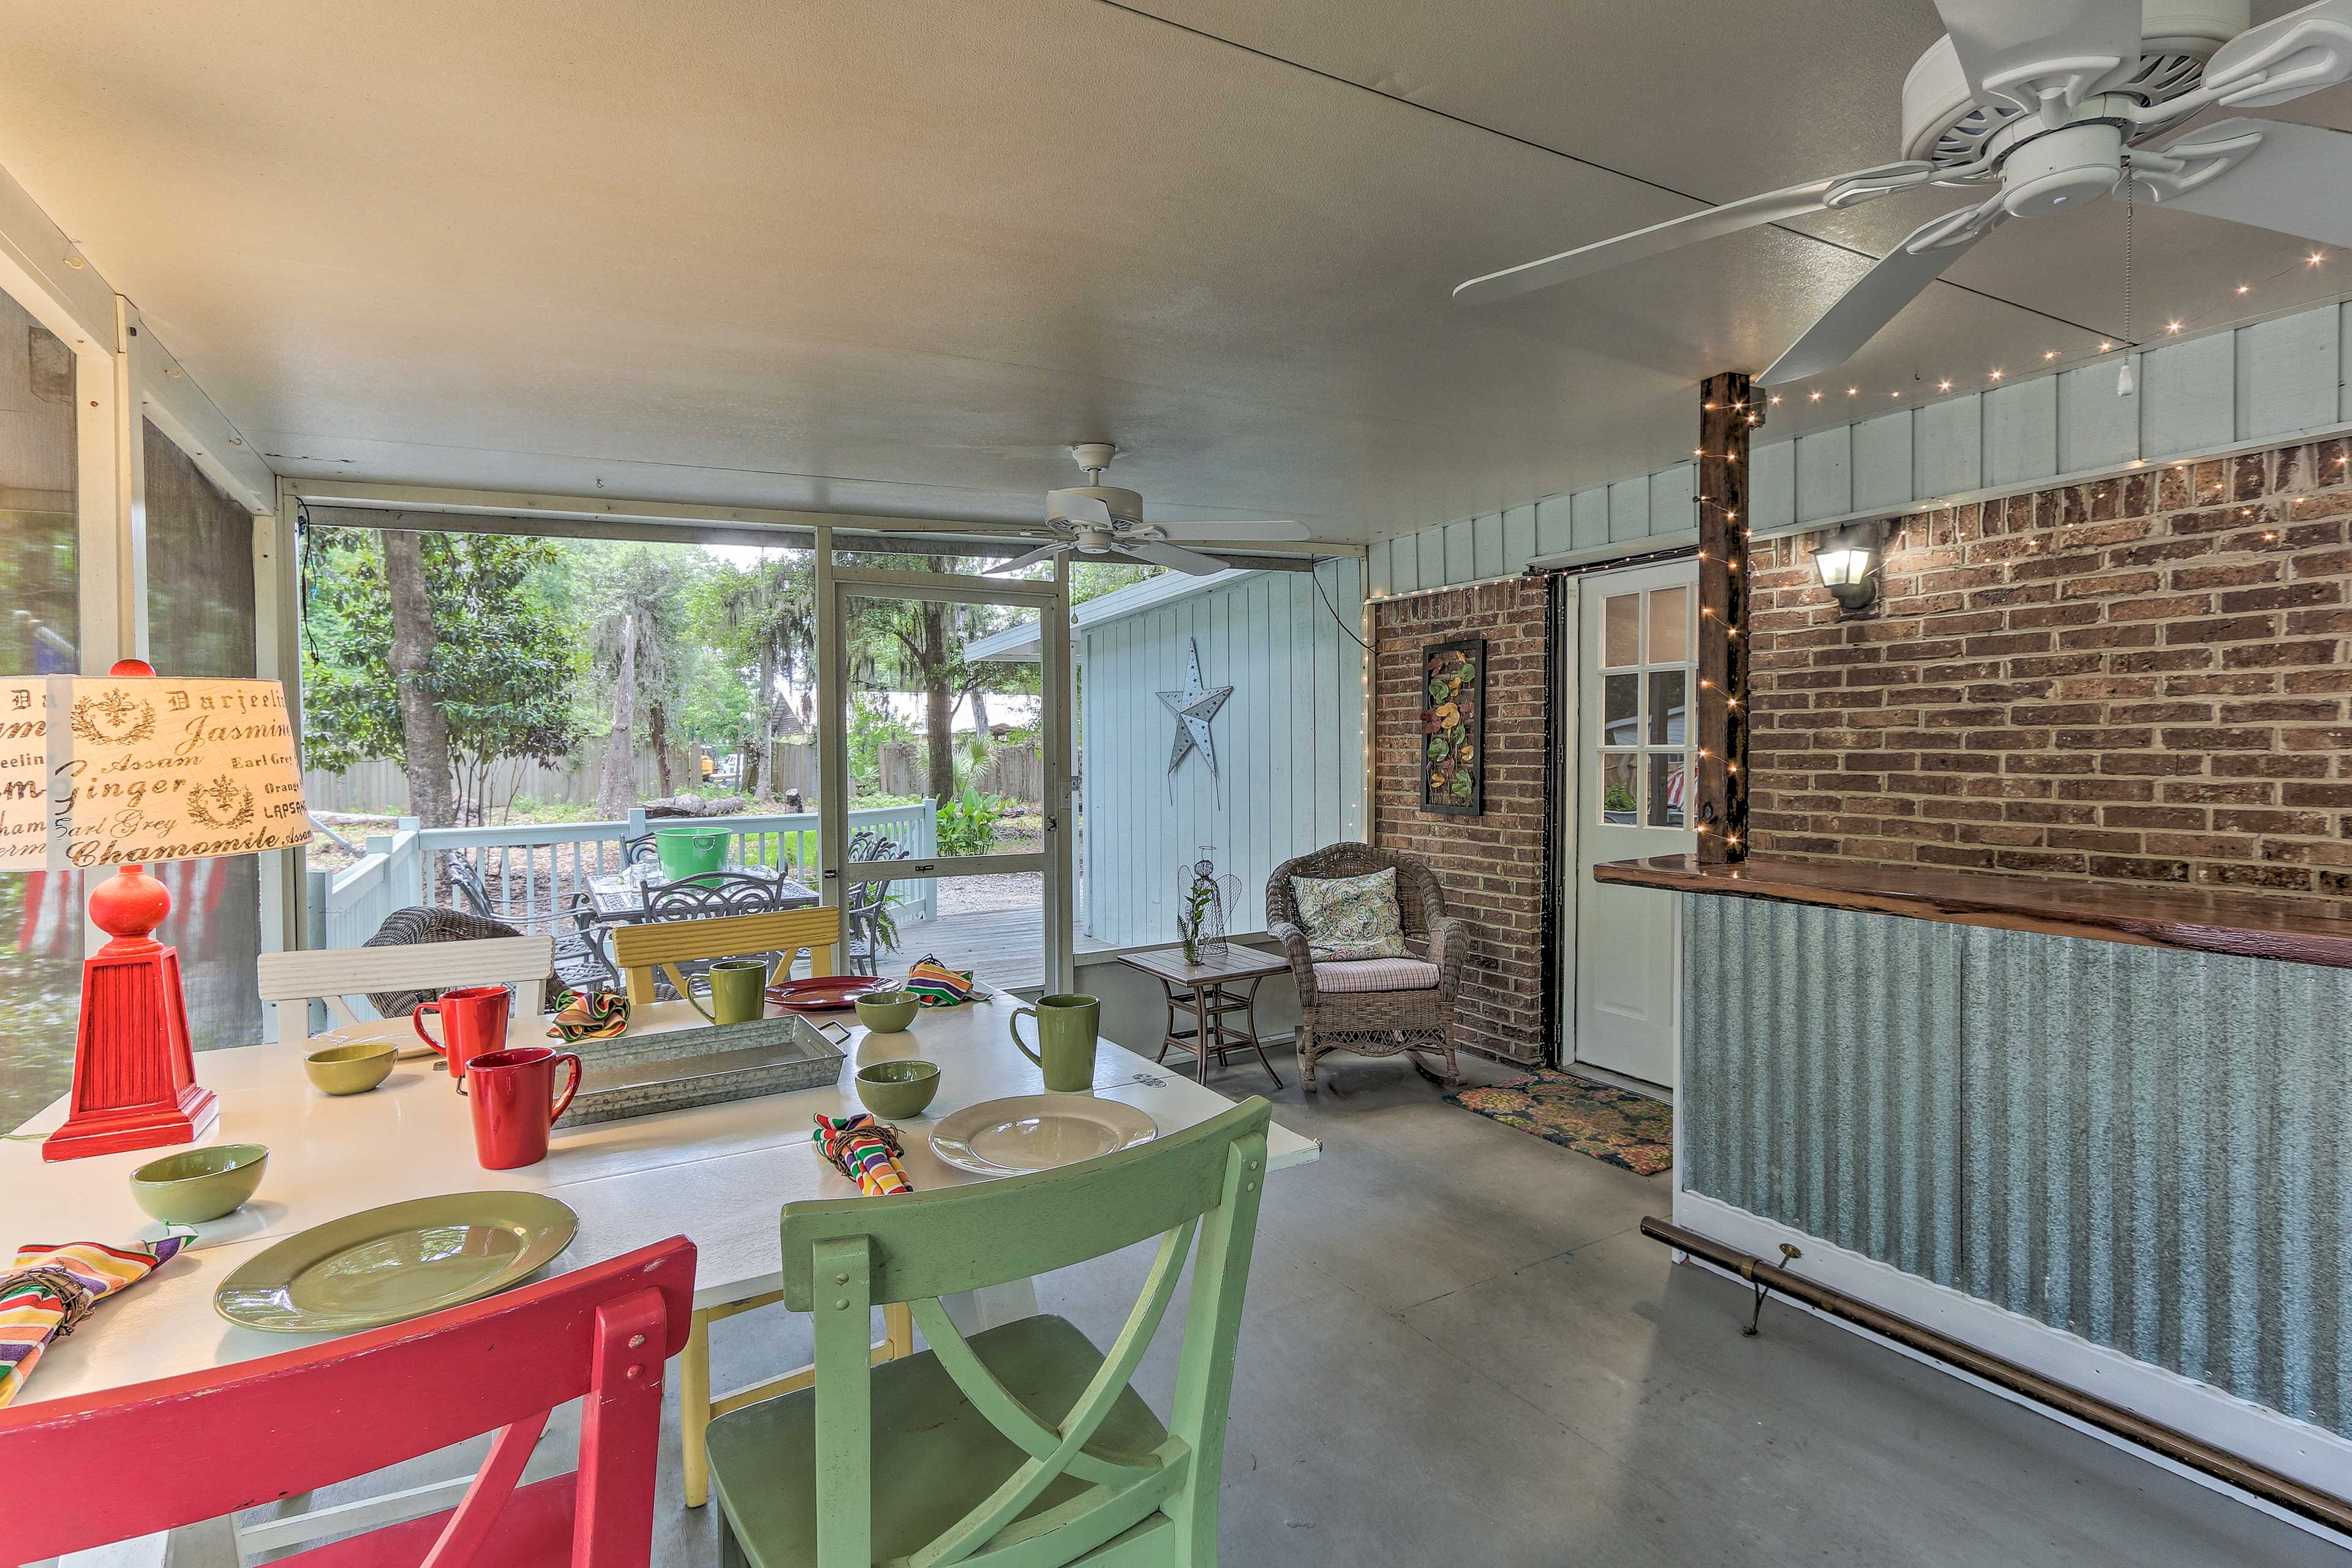 The screened-in porch is the perfect place to spend your time.